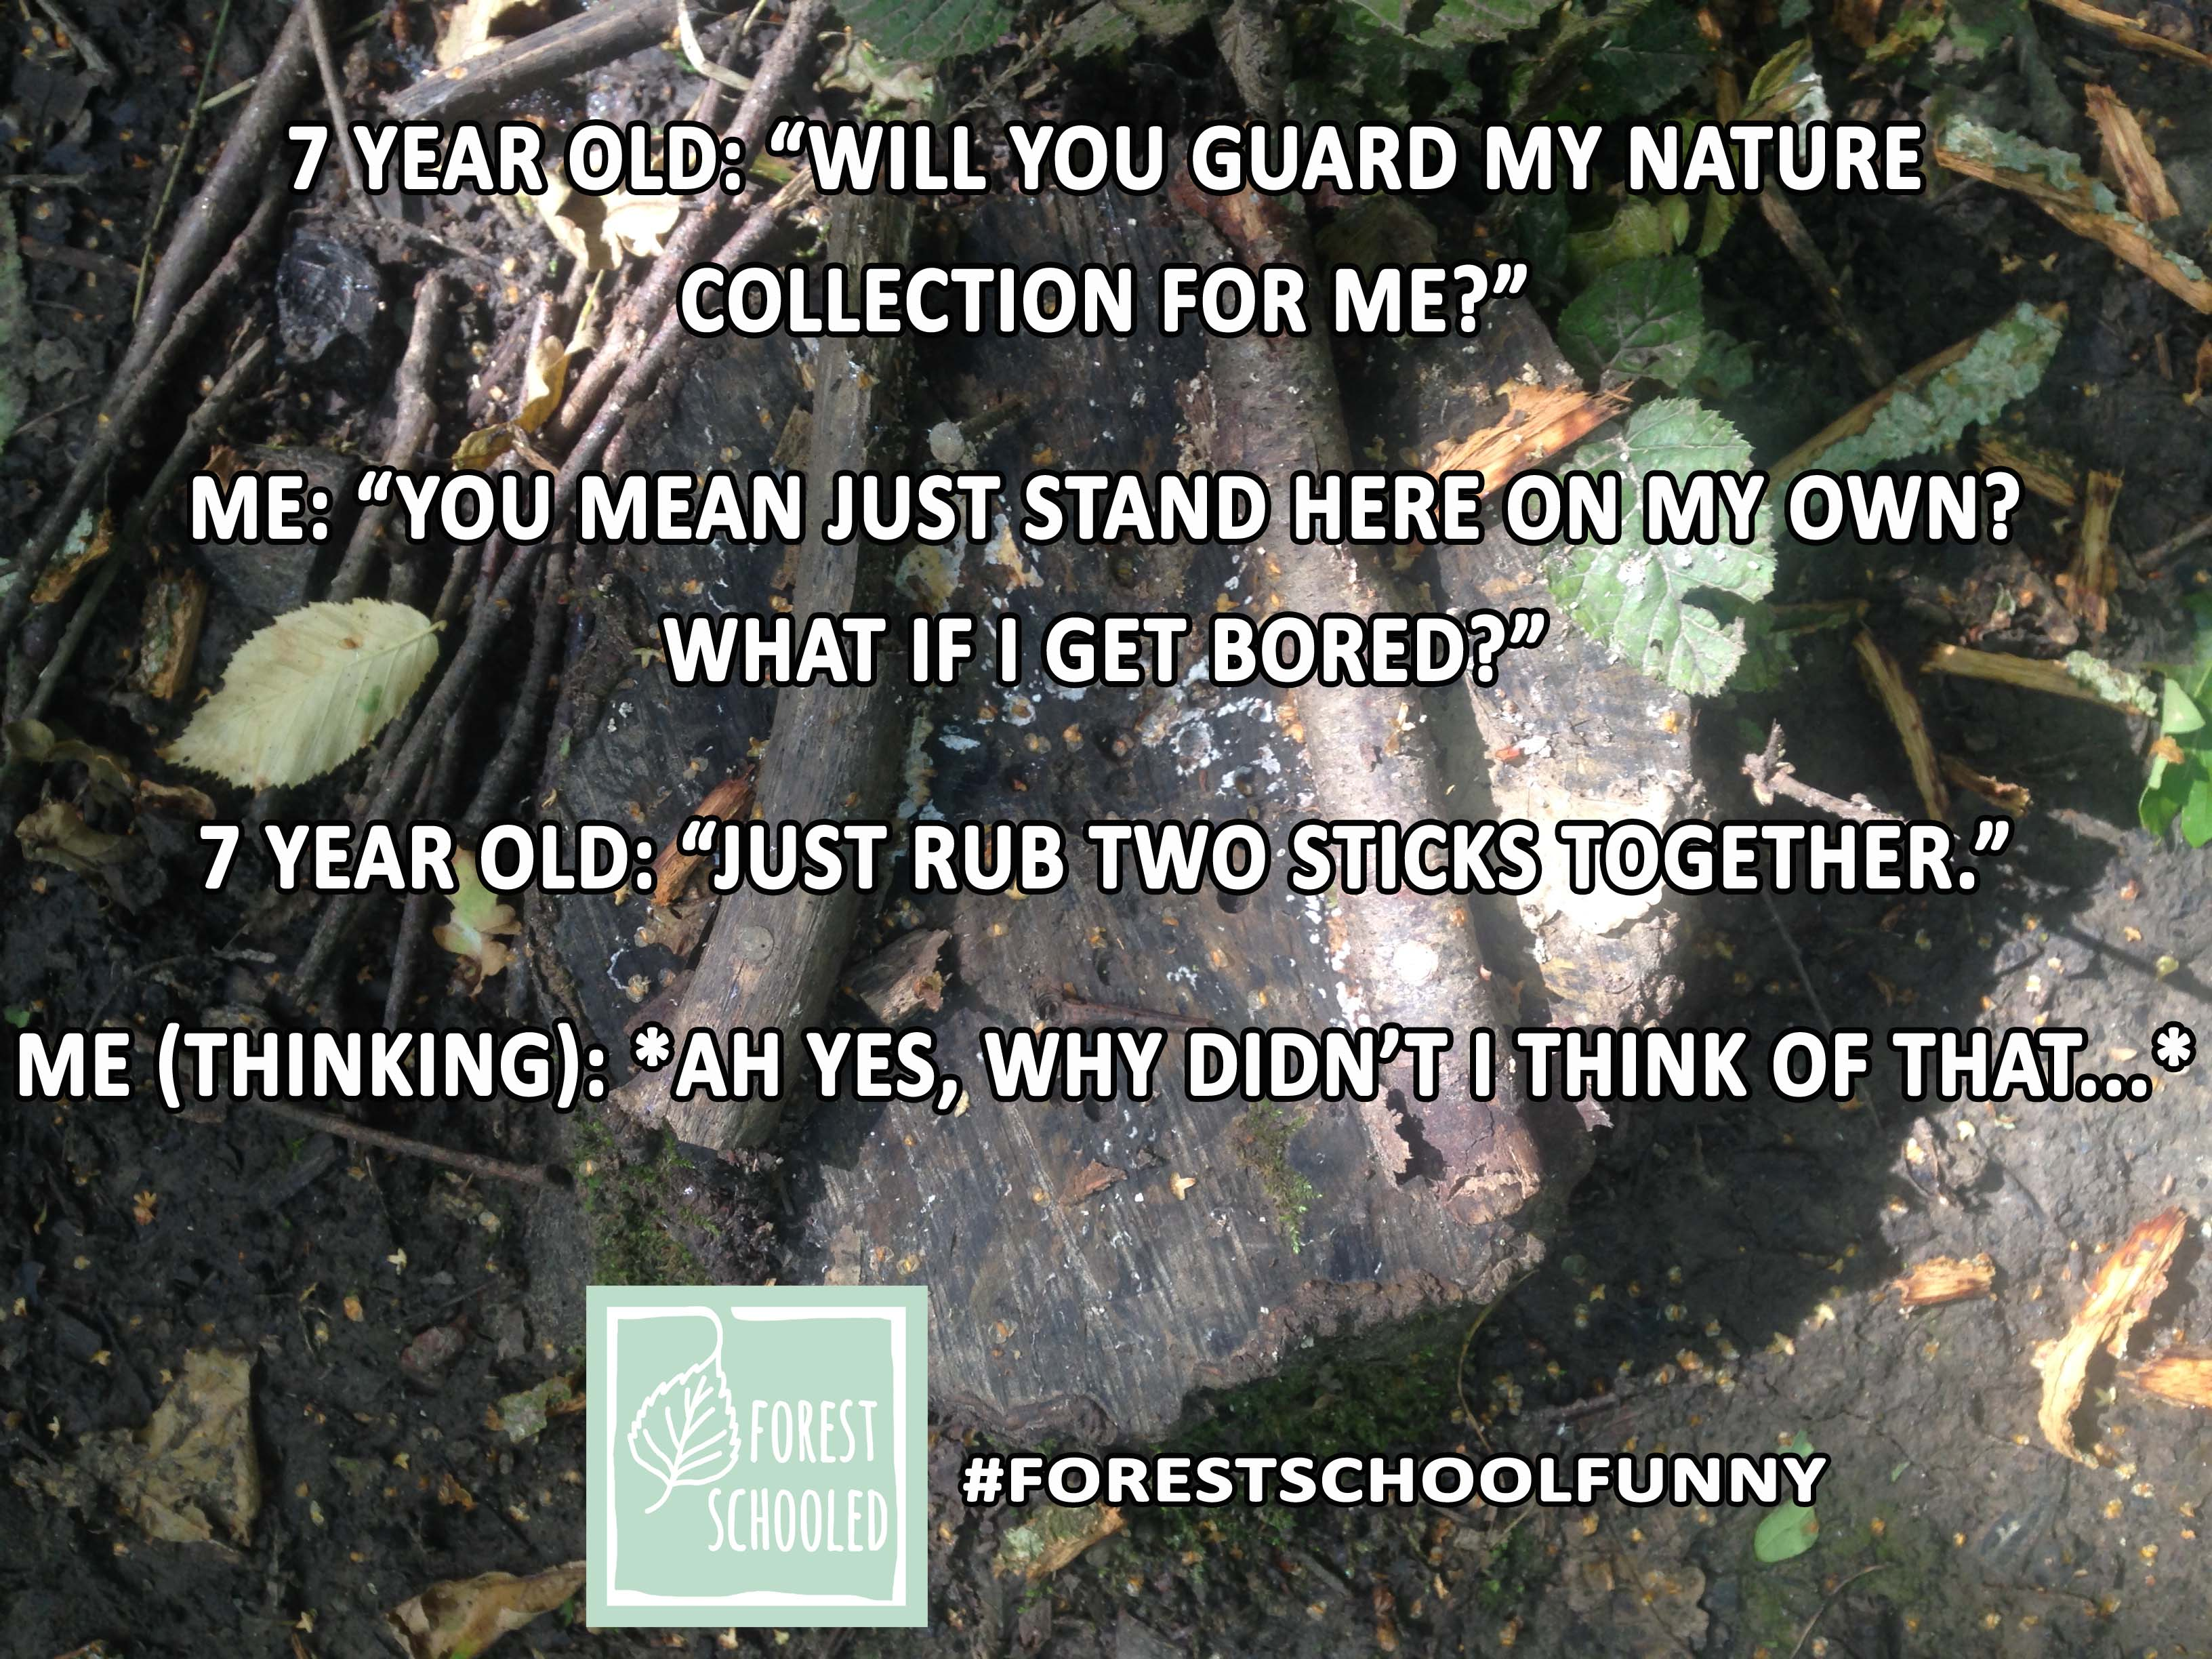 Forest School Funny20